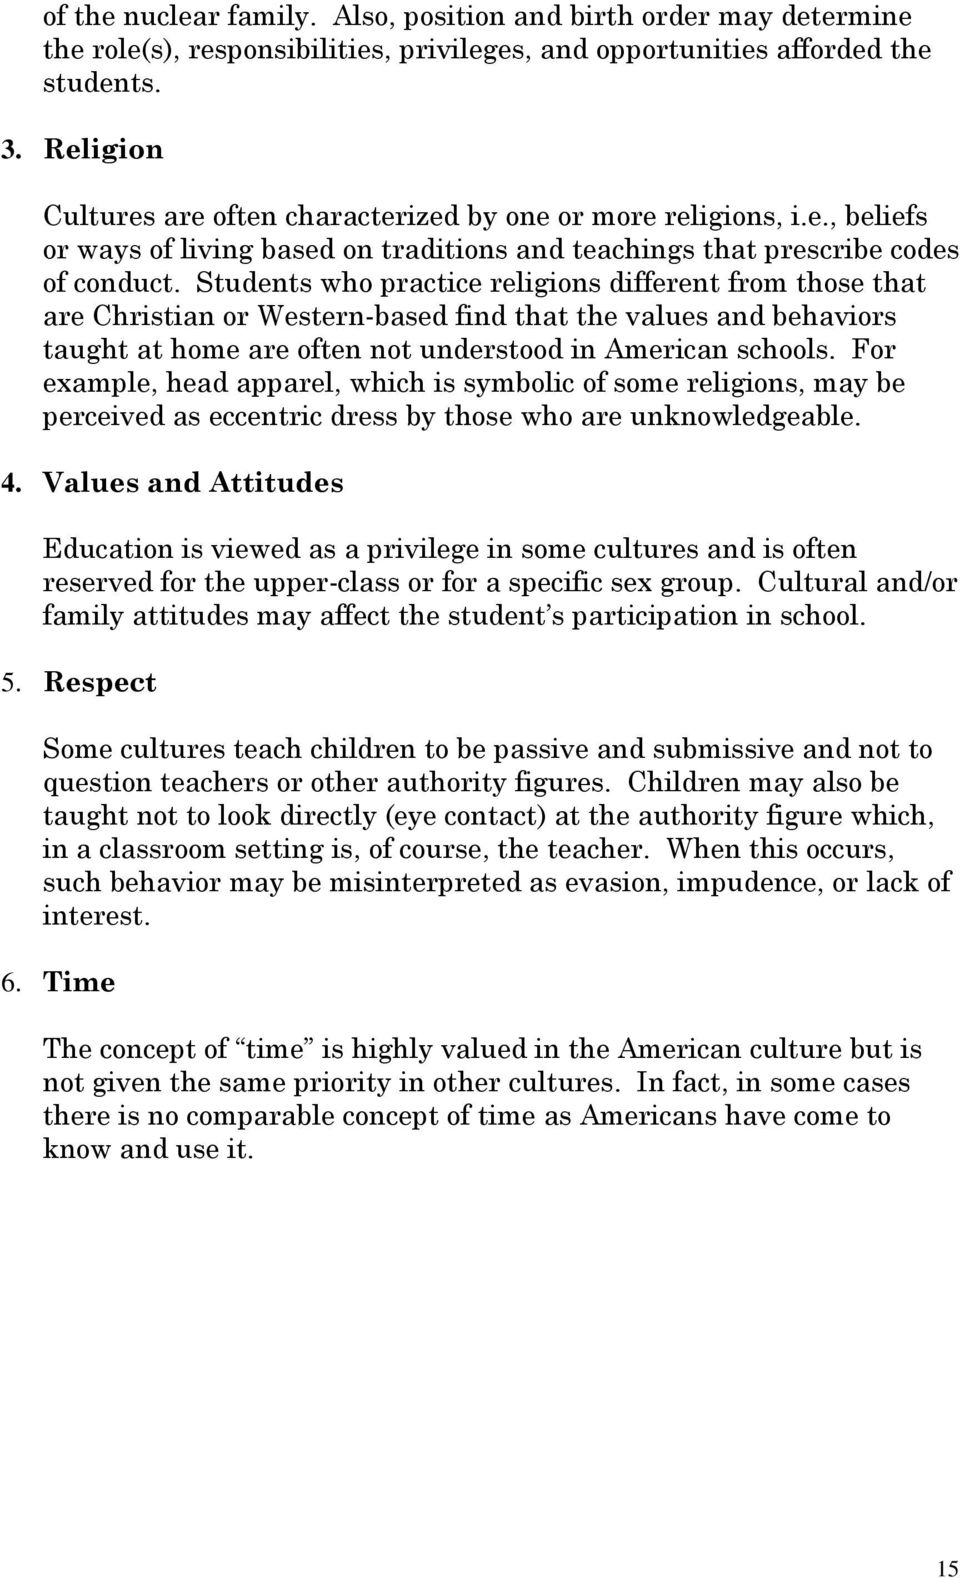 Students who practice religions different from those that are Christian or Western-based find that the values and behaviors taught at home are often not understood in American schools.